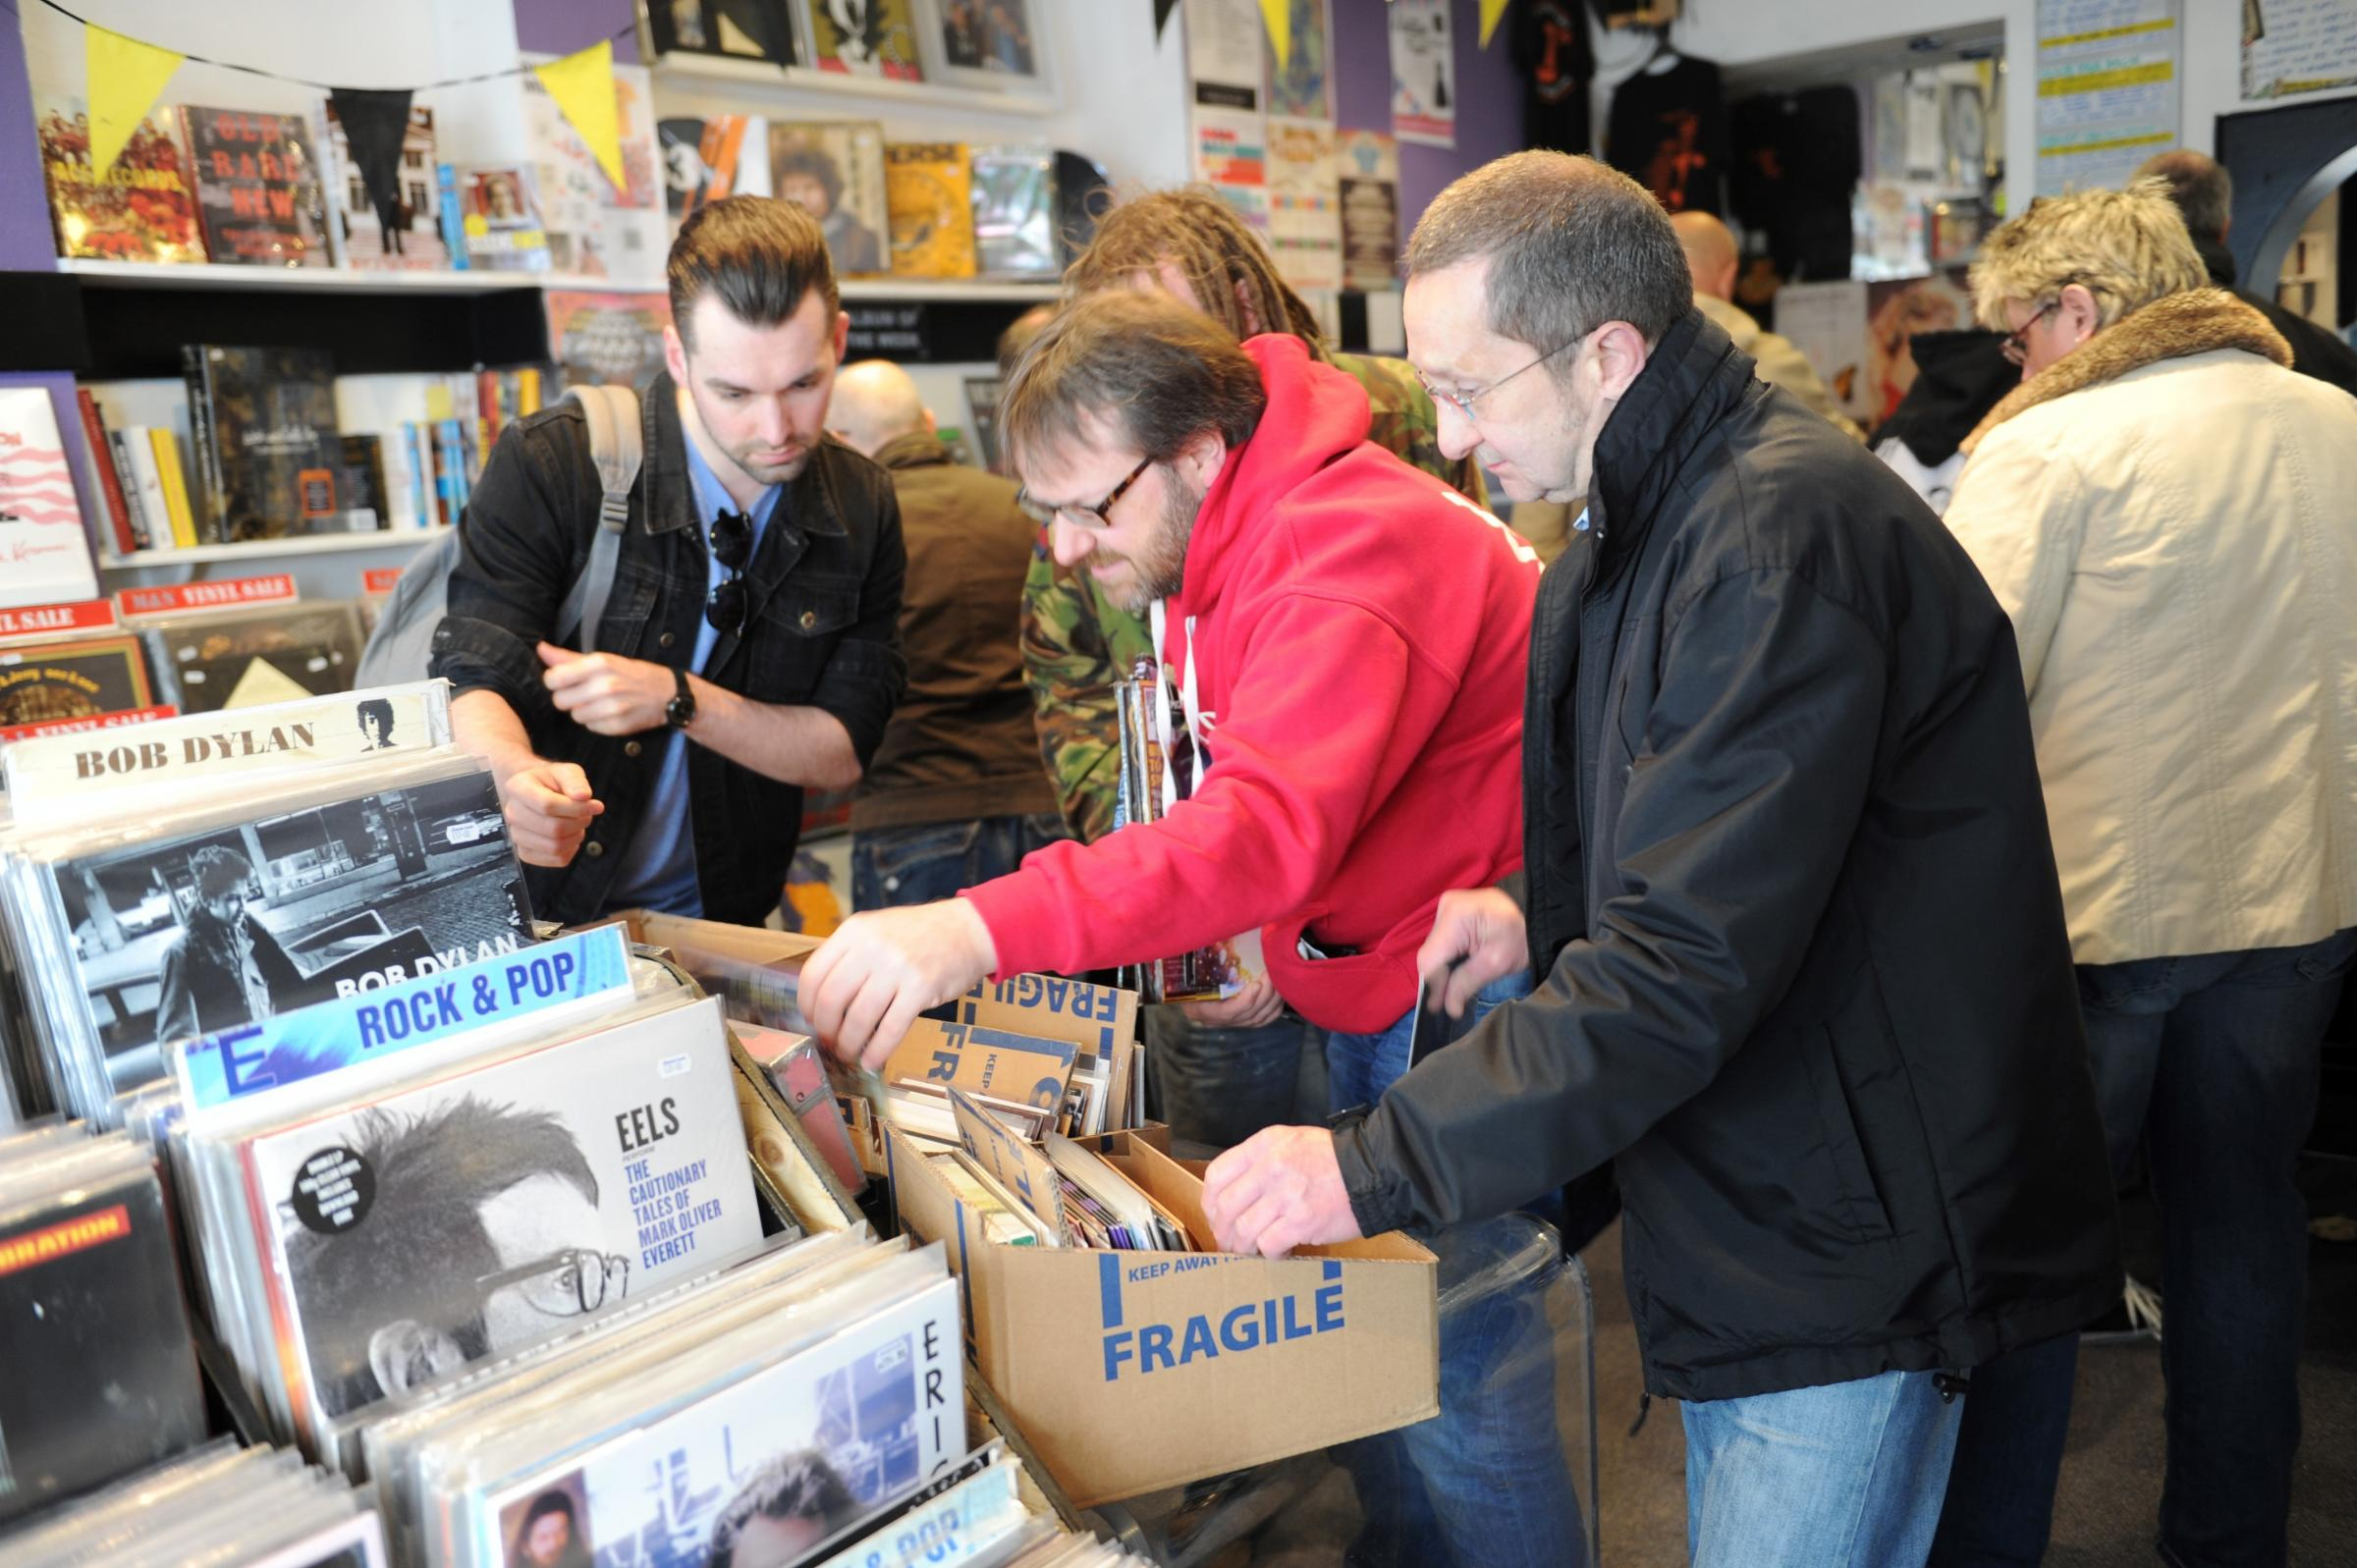 Record store day brings out the crowds in Newport